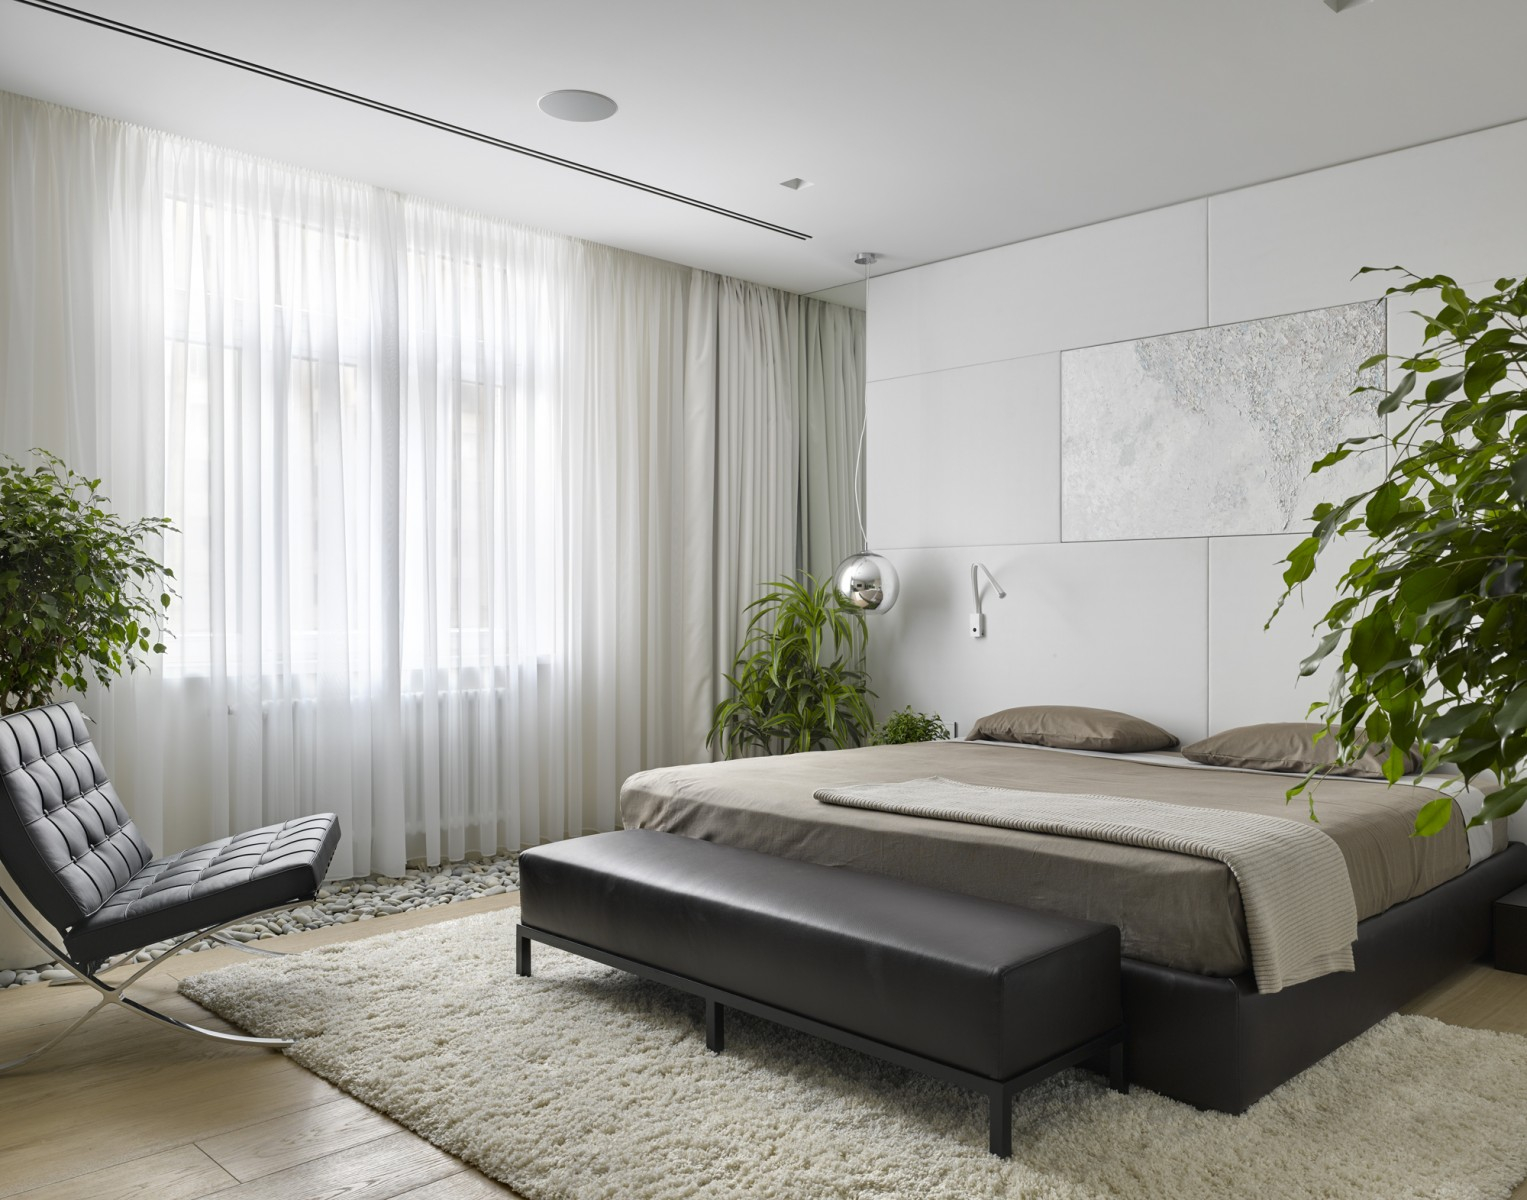 20 Best Small Modern Bedroom Ideas Architecture Beast within Bedroom Design Ideas Modern